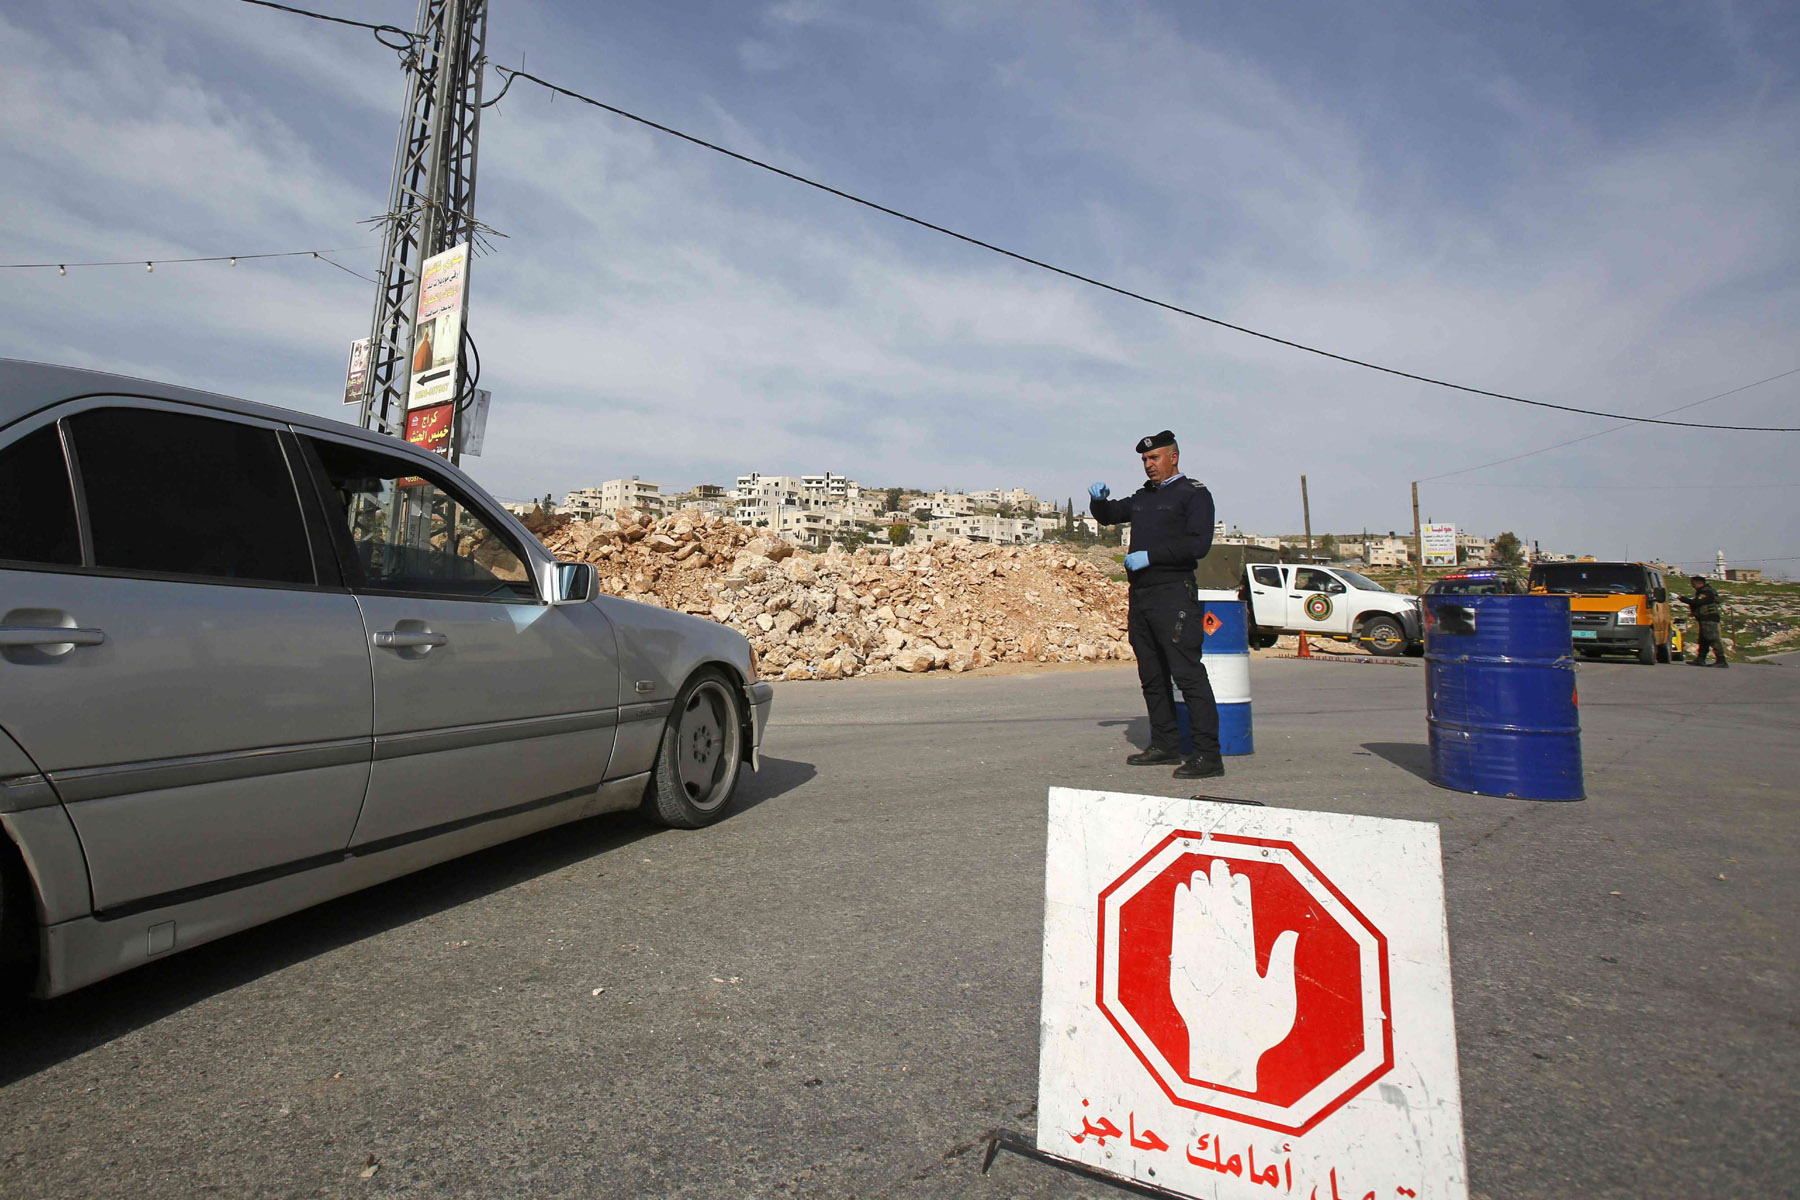 Palestinian security forces man a checkpoint in the West Bank city of Bethlehem, currently under lockdown due to coronavirus, March 10. (AFP)